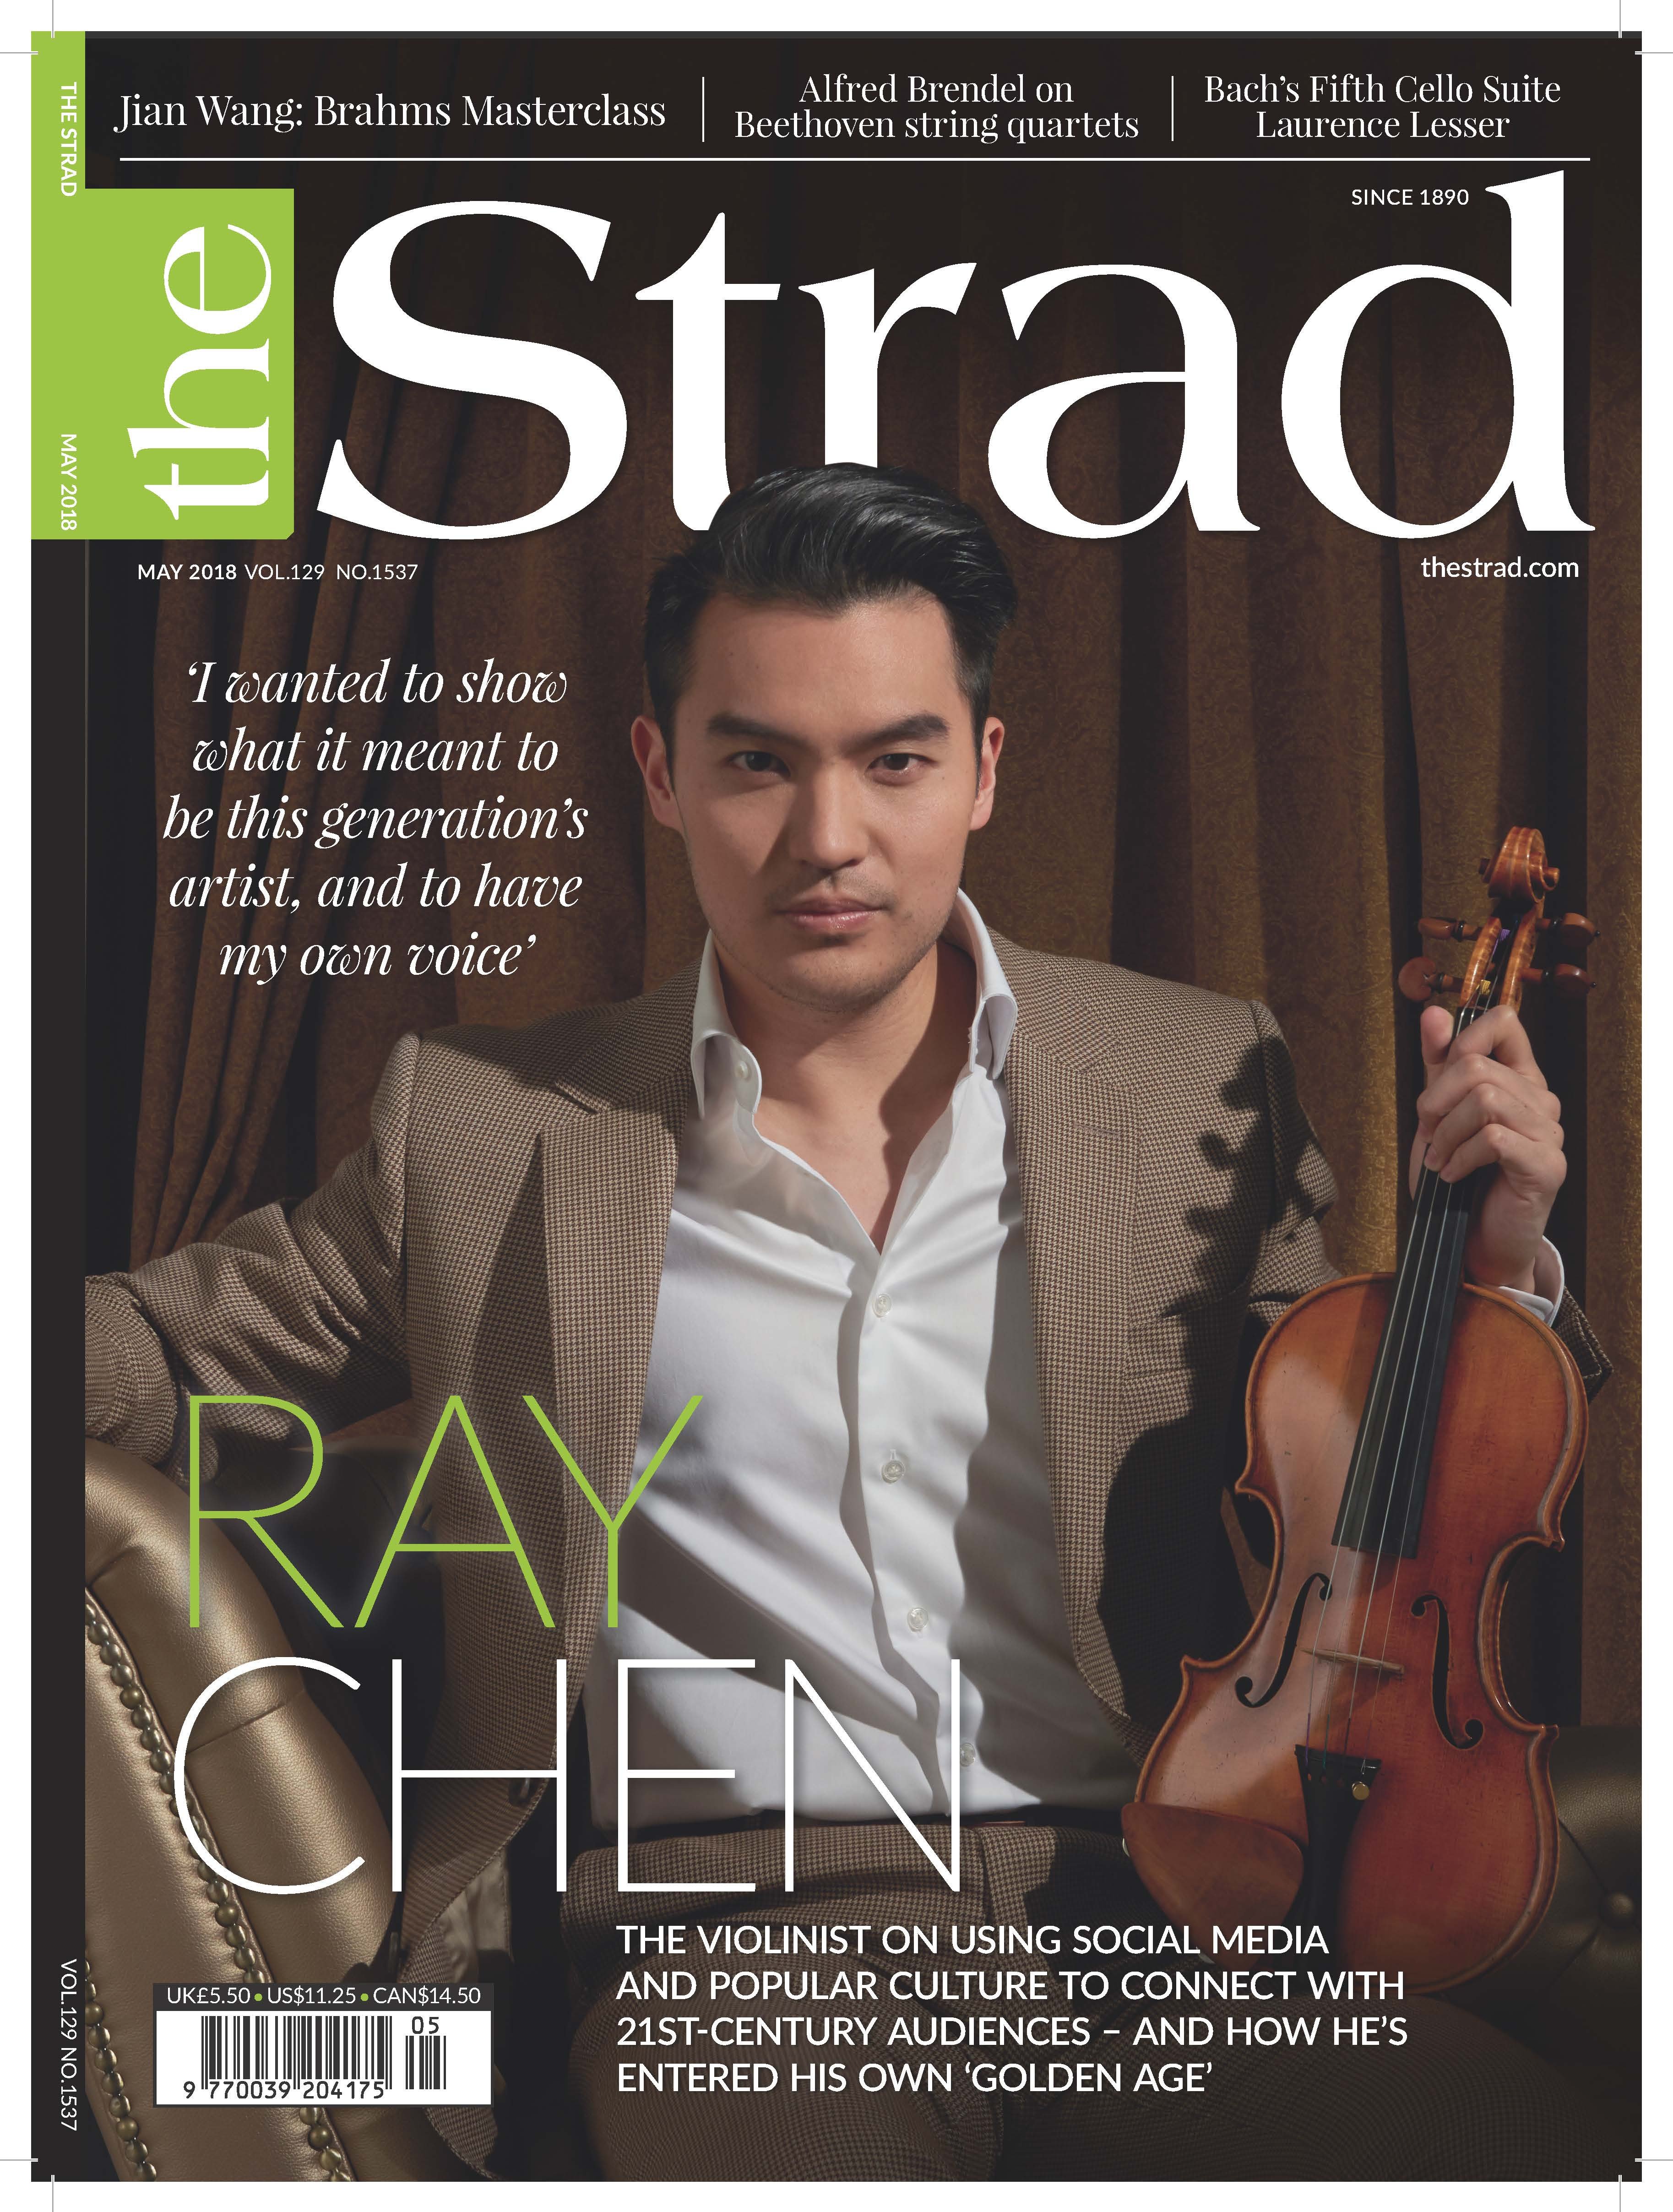 2018_5.May_Ray Chen cover